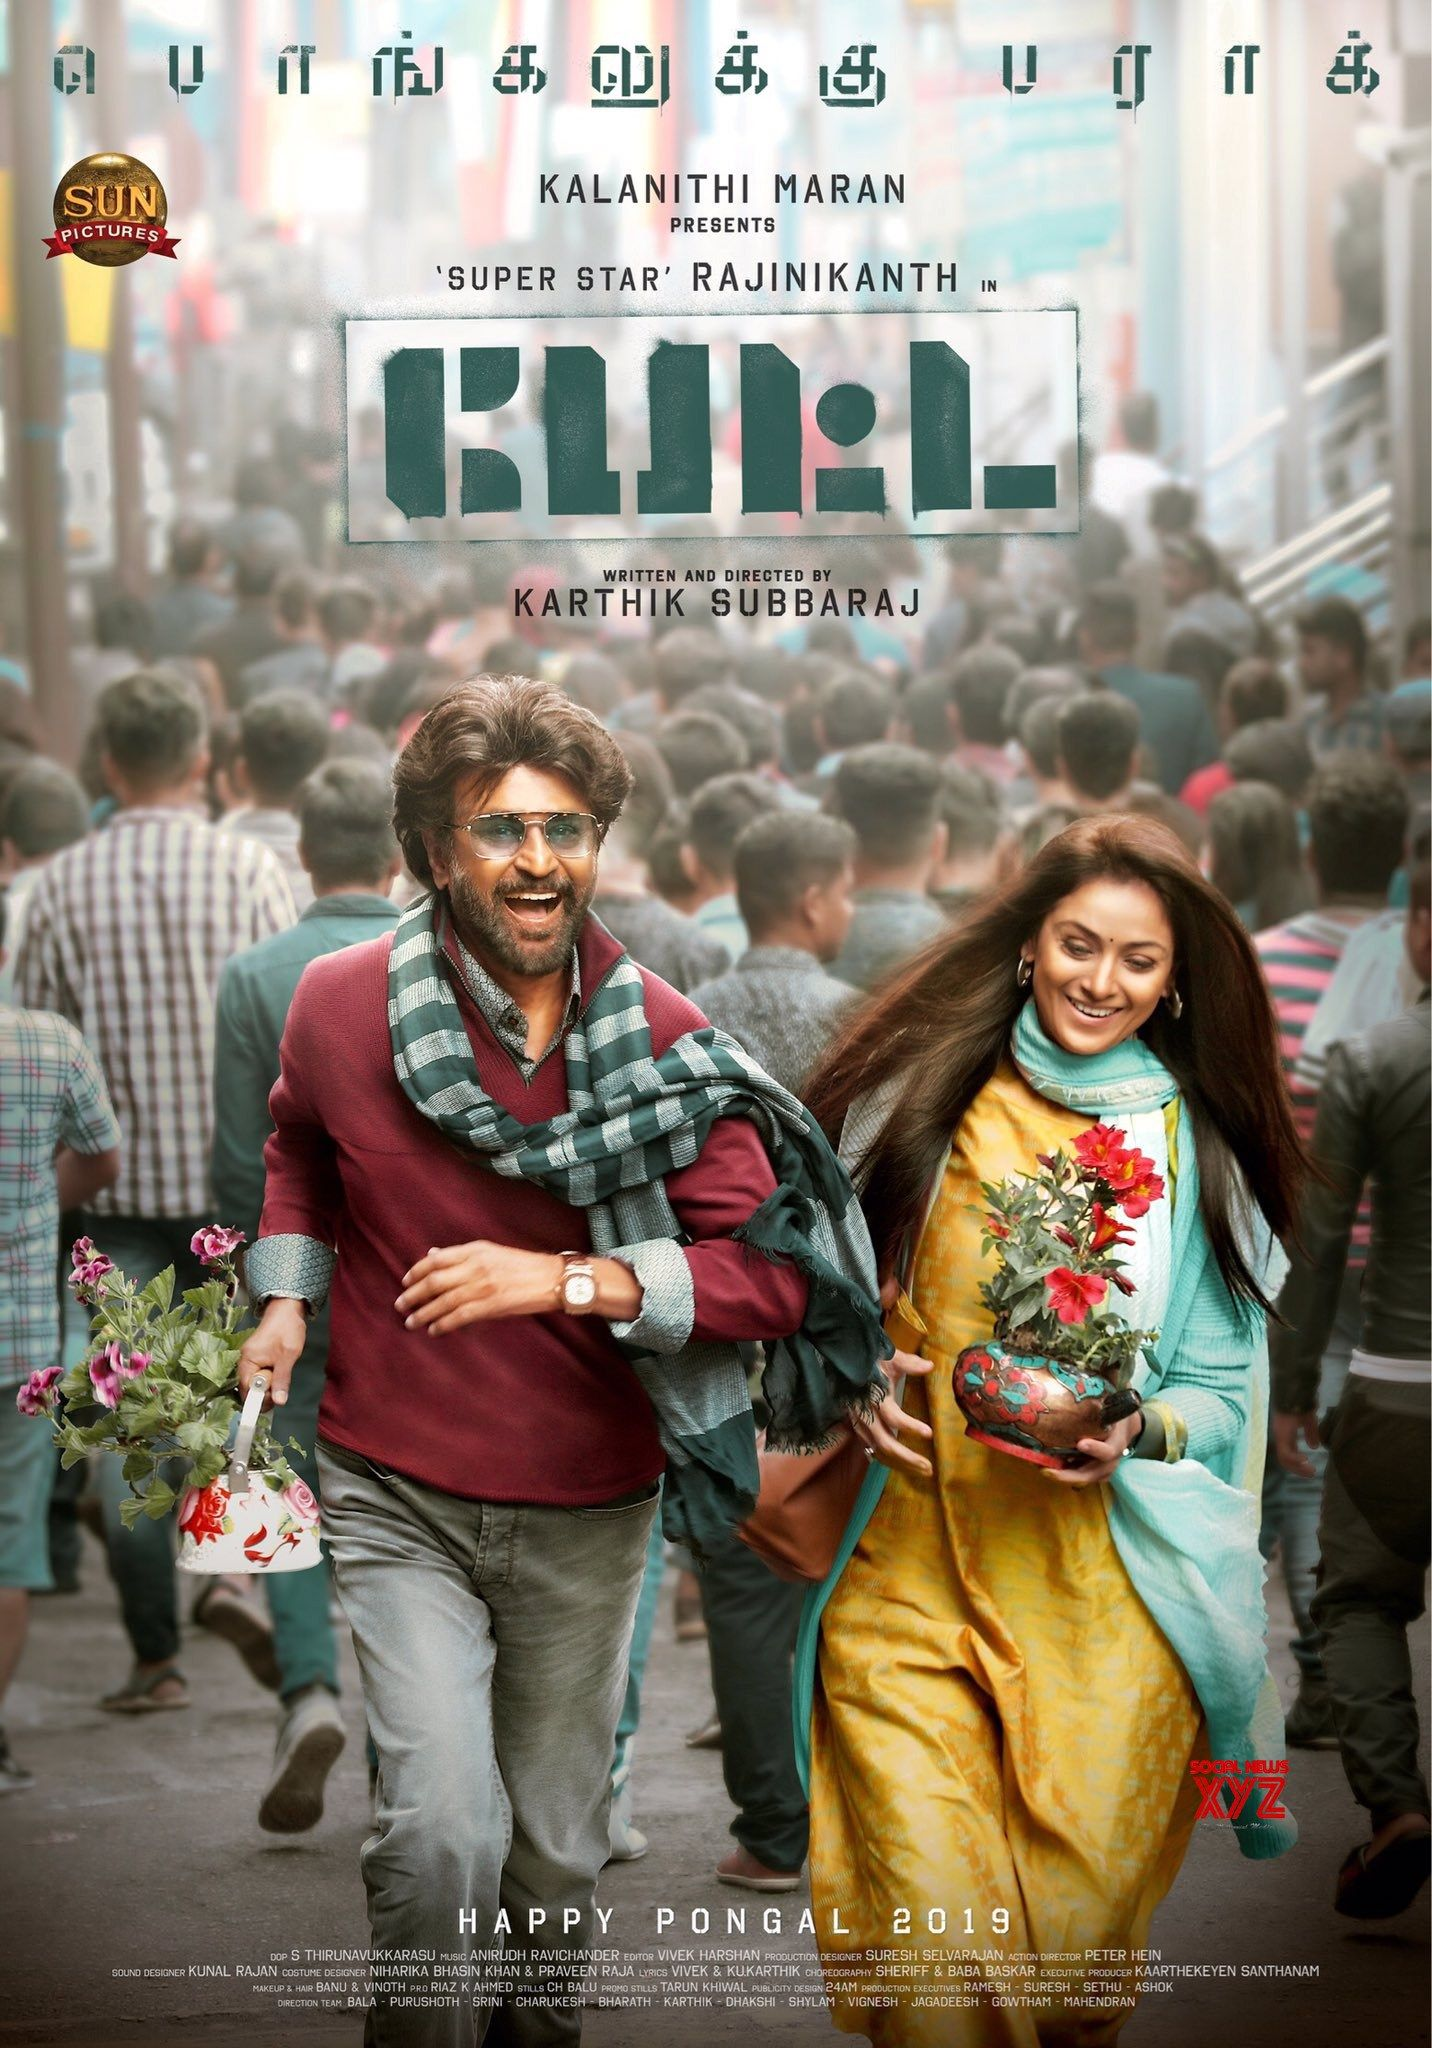 Petta New Poster Featuring Simran And Rajinikanth With Images New Movies New Poster Upcoming Movies